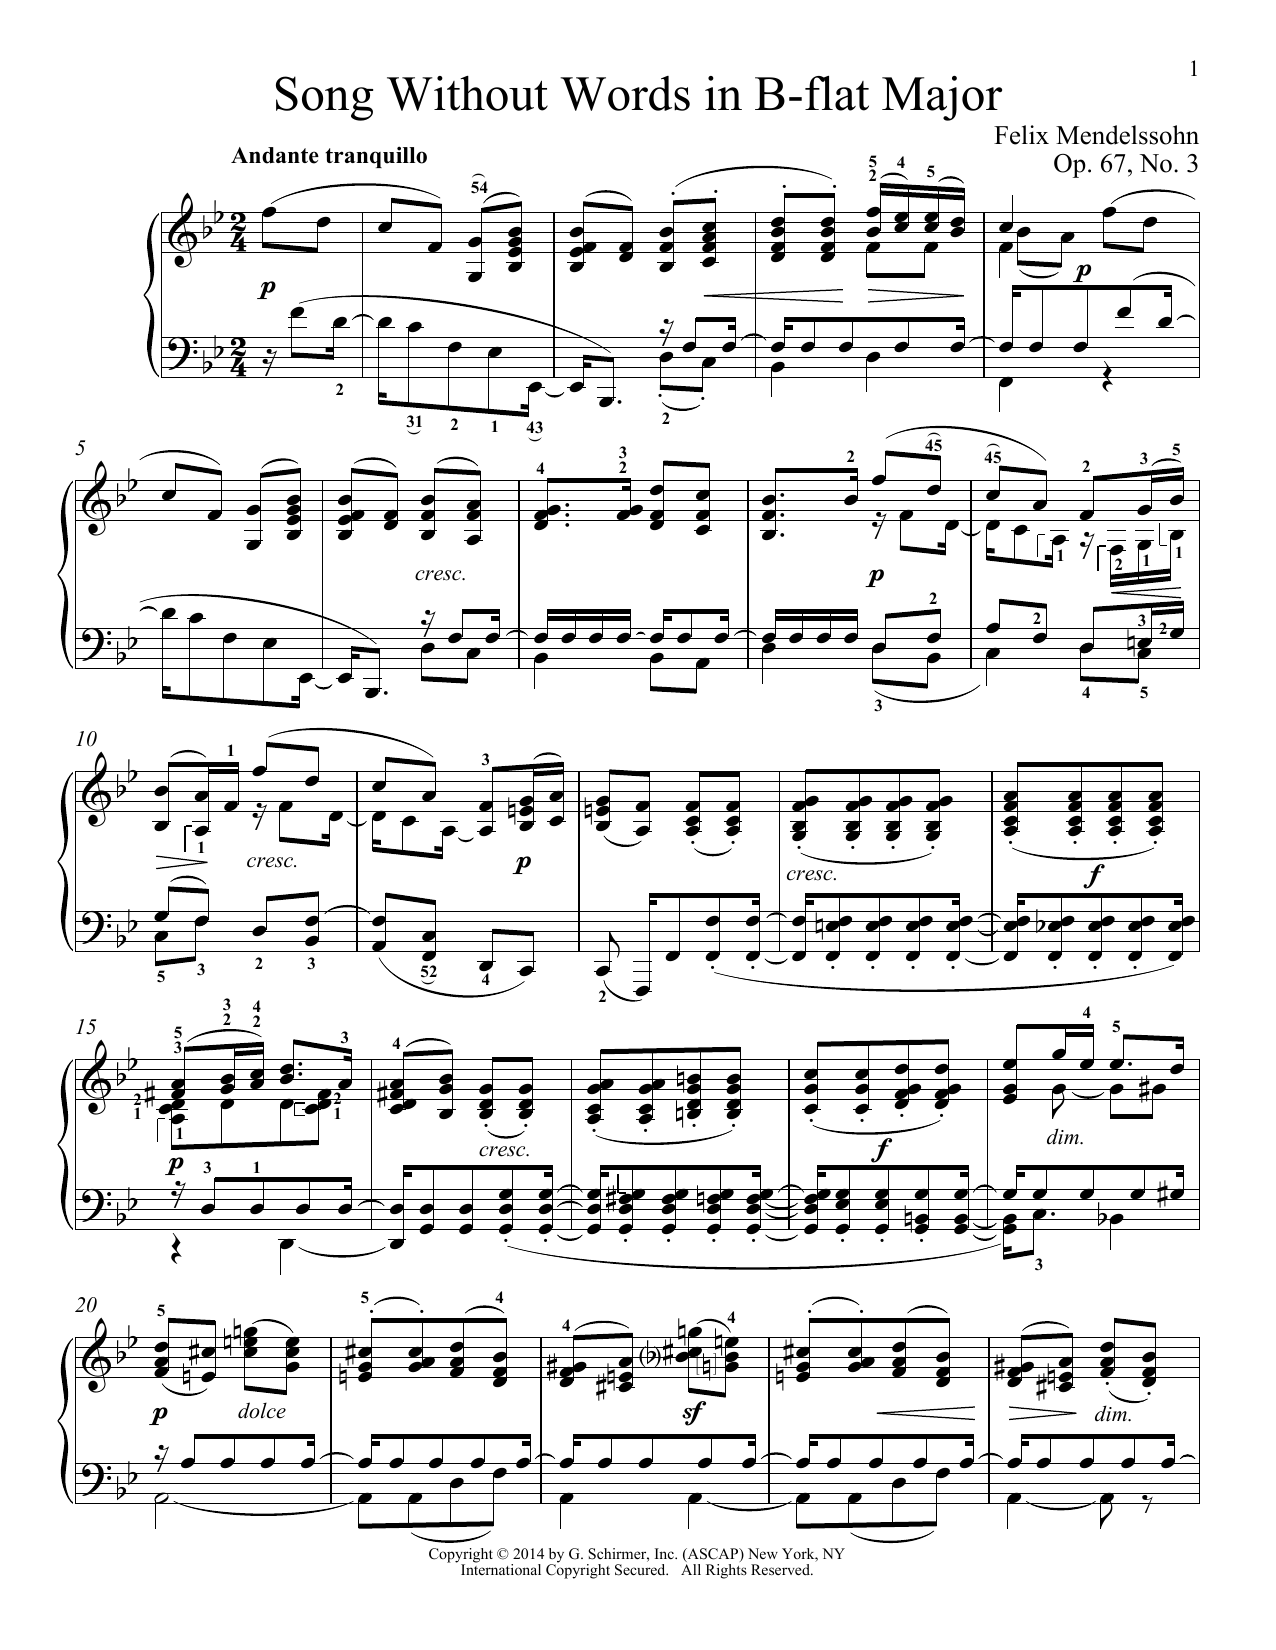 Partition piano Song Without Words In B-Flat Major, Op. 67, No. 3 de Felix Mendelssohn - Piano Solo